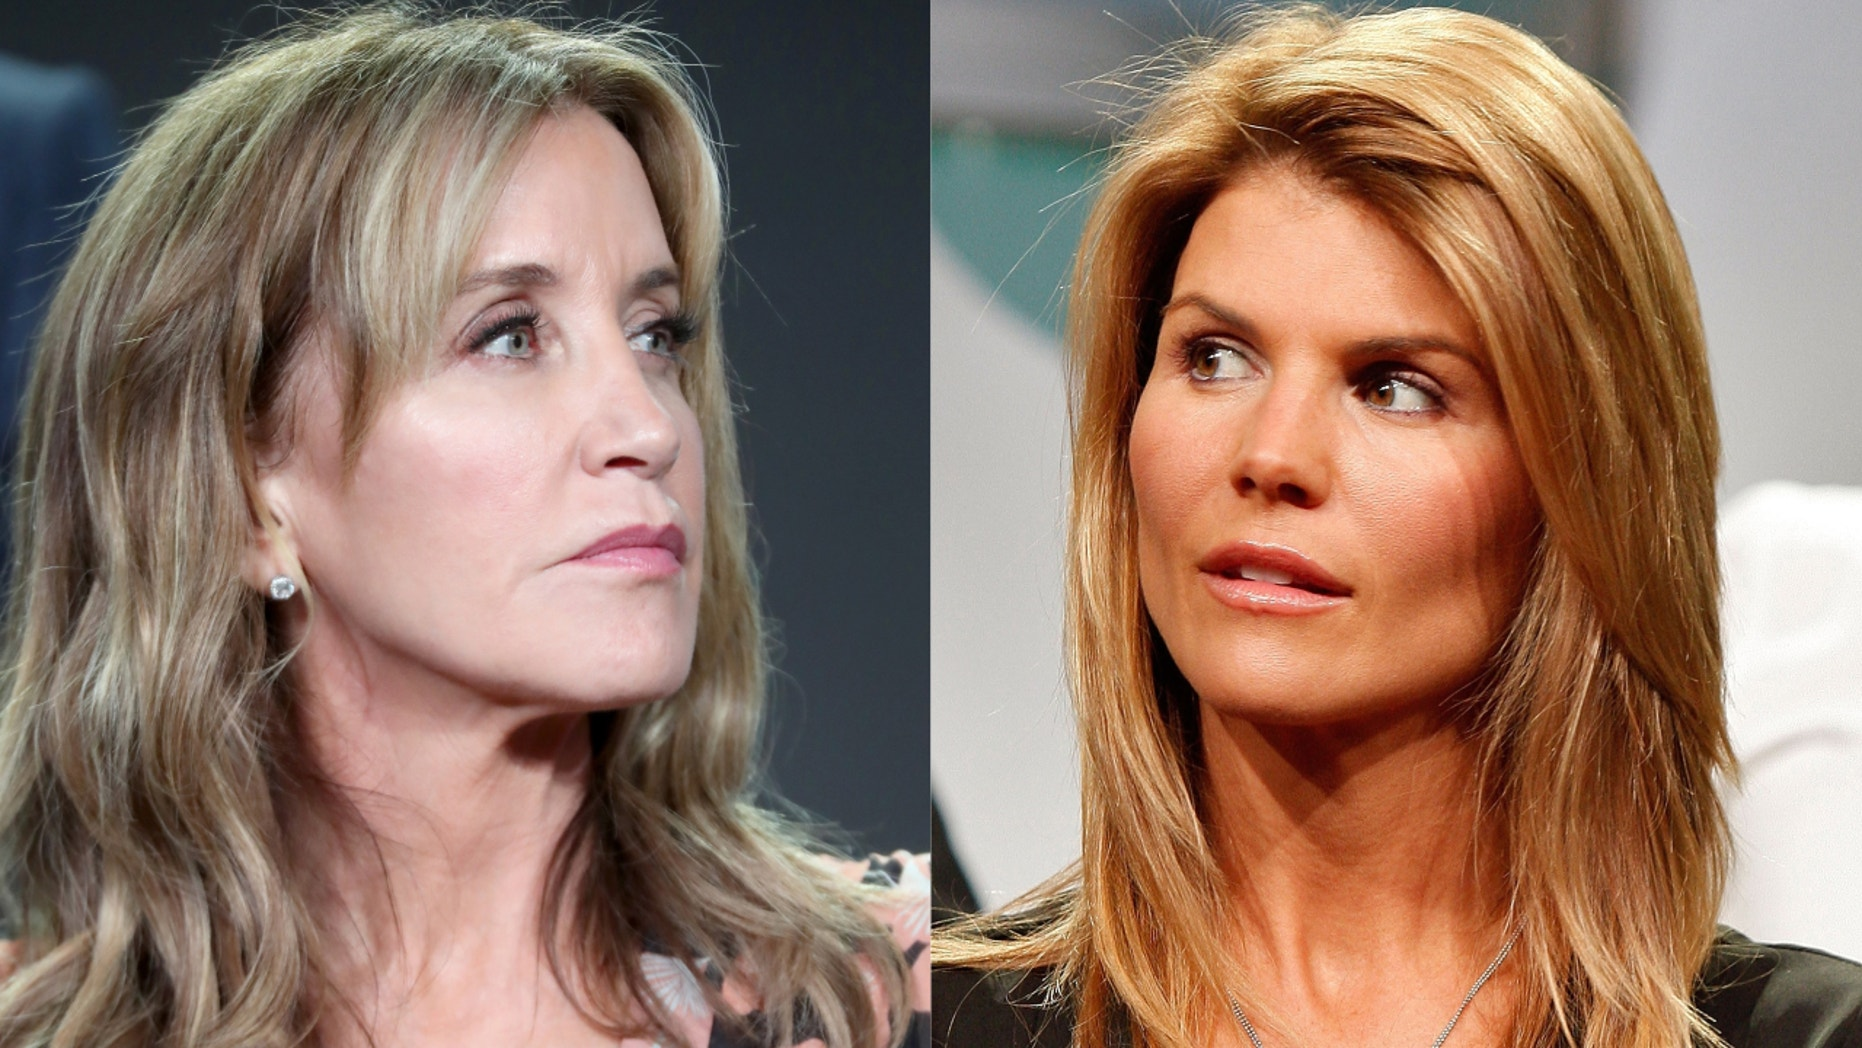 Hypocrisy, privilege and bribes: Celebrities caught in college admissions fraud scandal